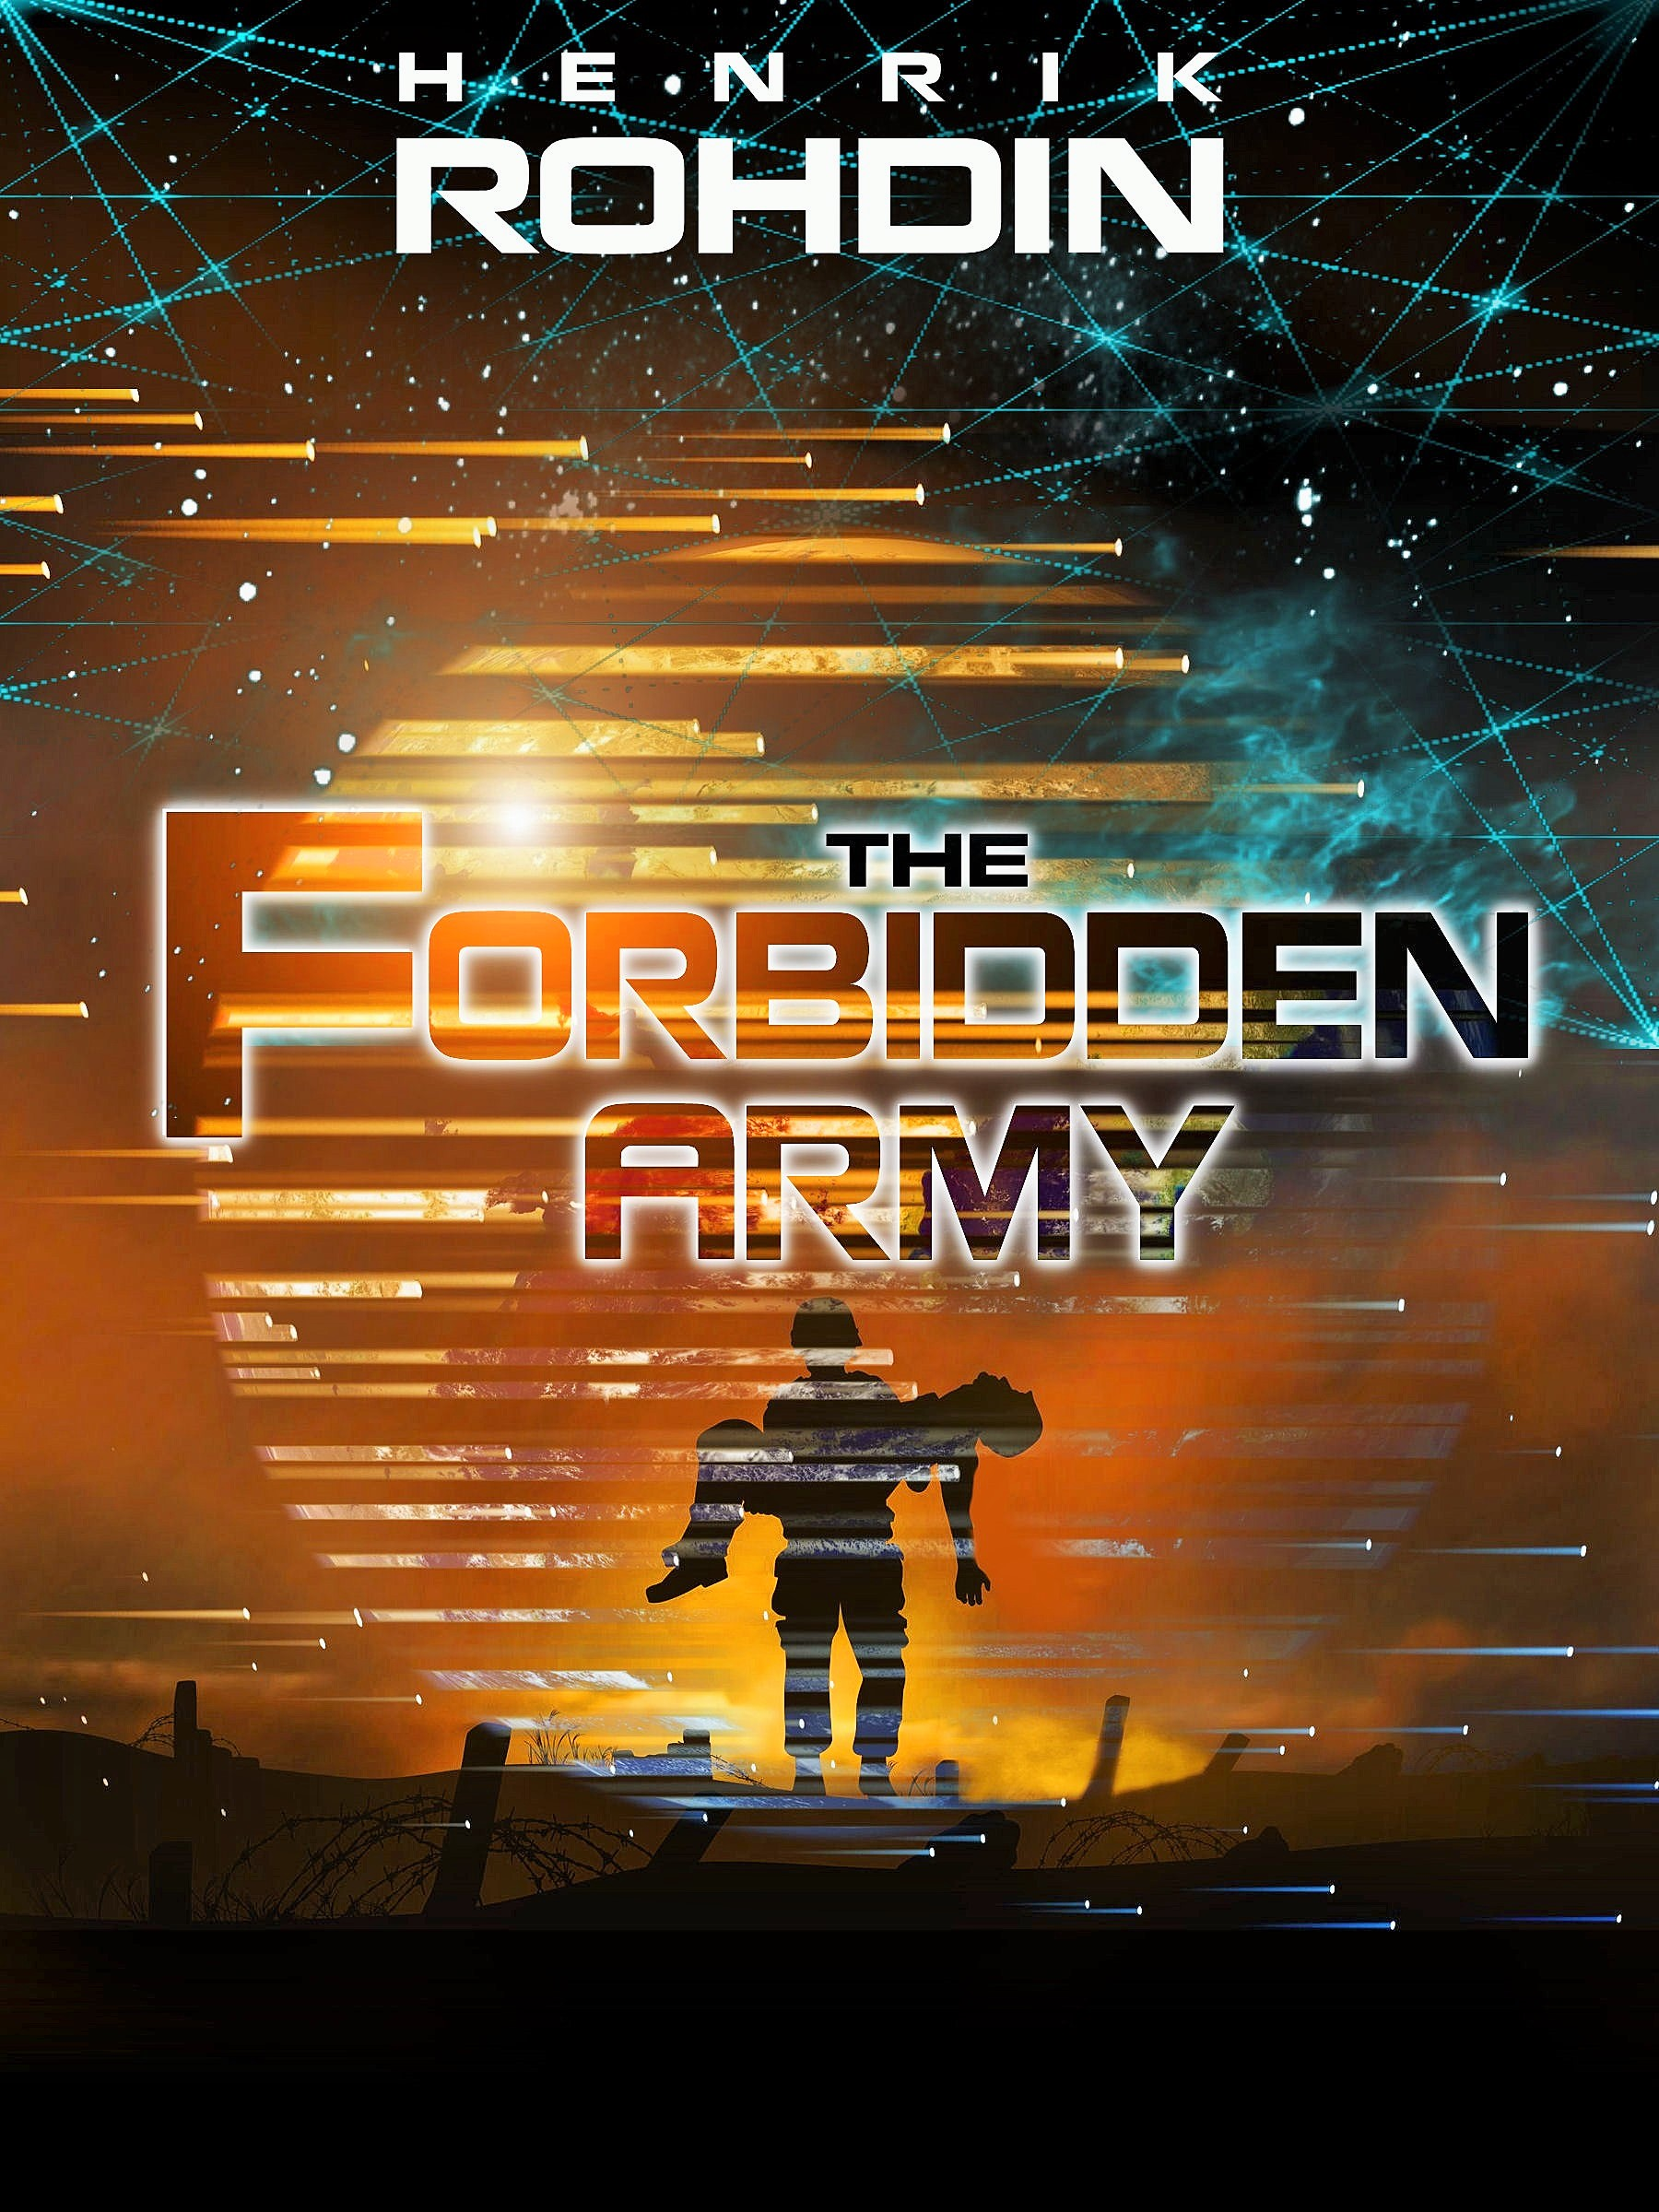 The Forbidden Army